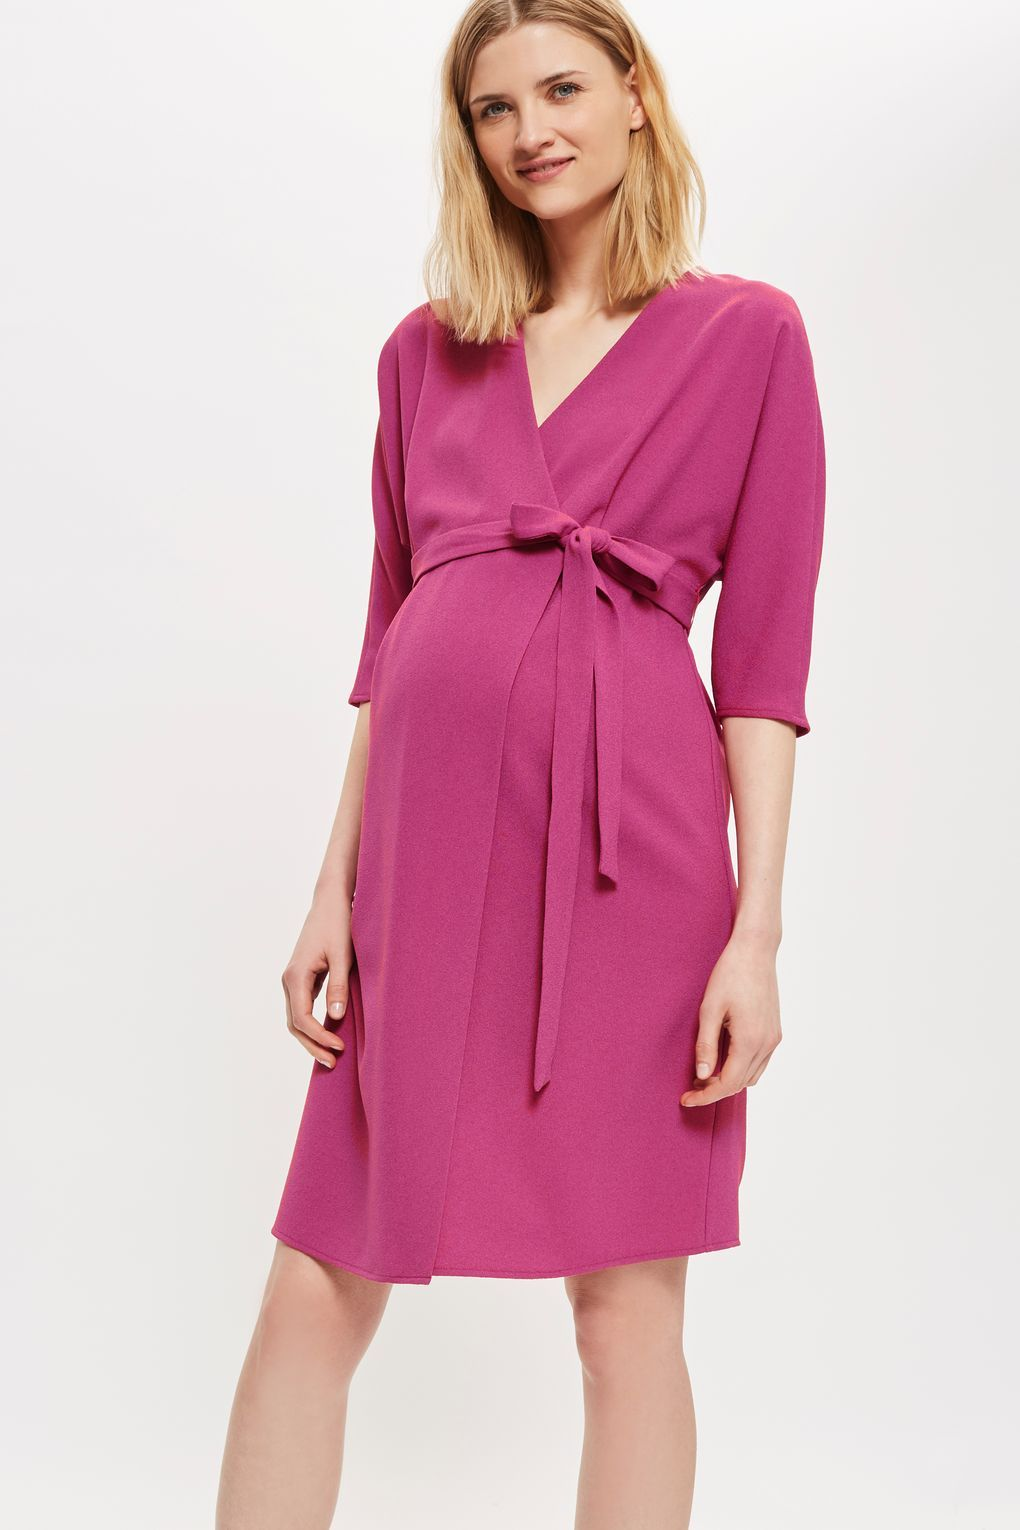 Maternity wrap midi dress dresses clothing midi dresses maternity wrap midi dress dresses clothing ombrellifo Image collections